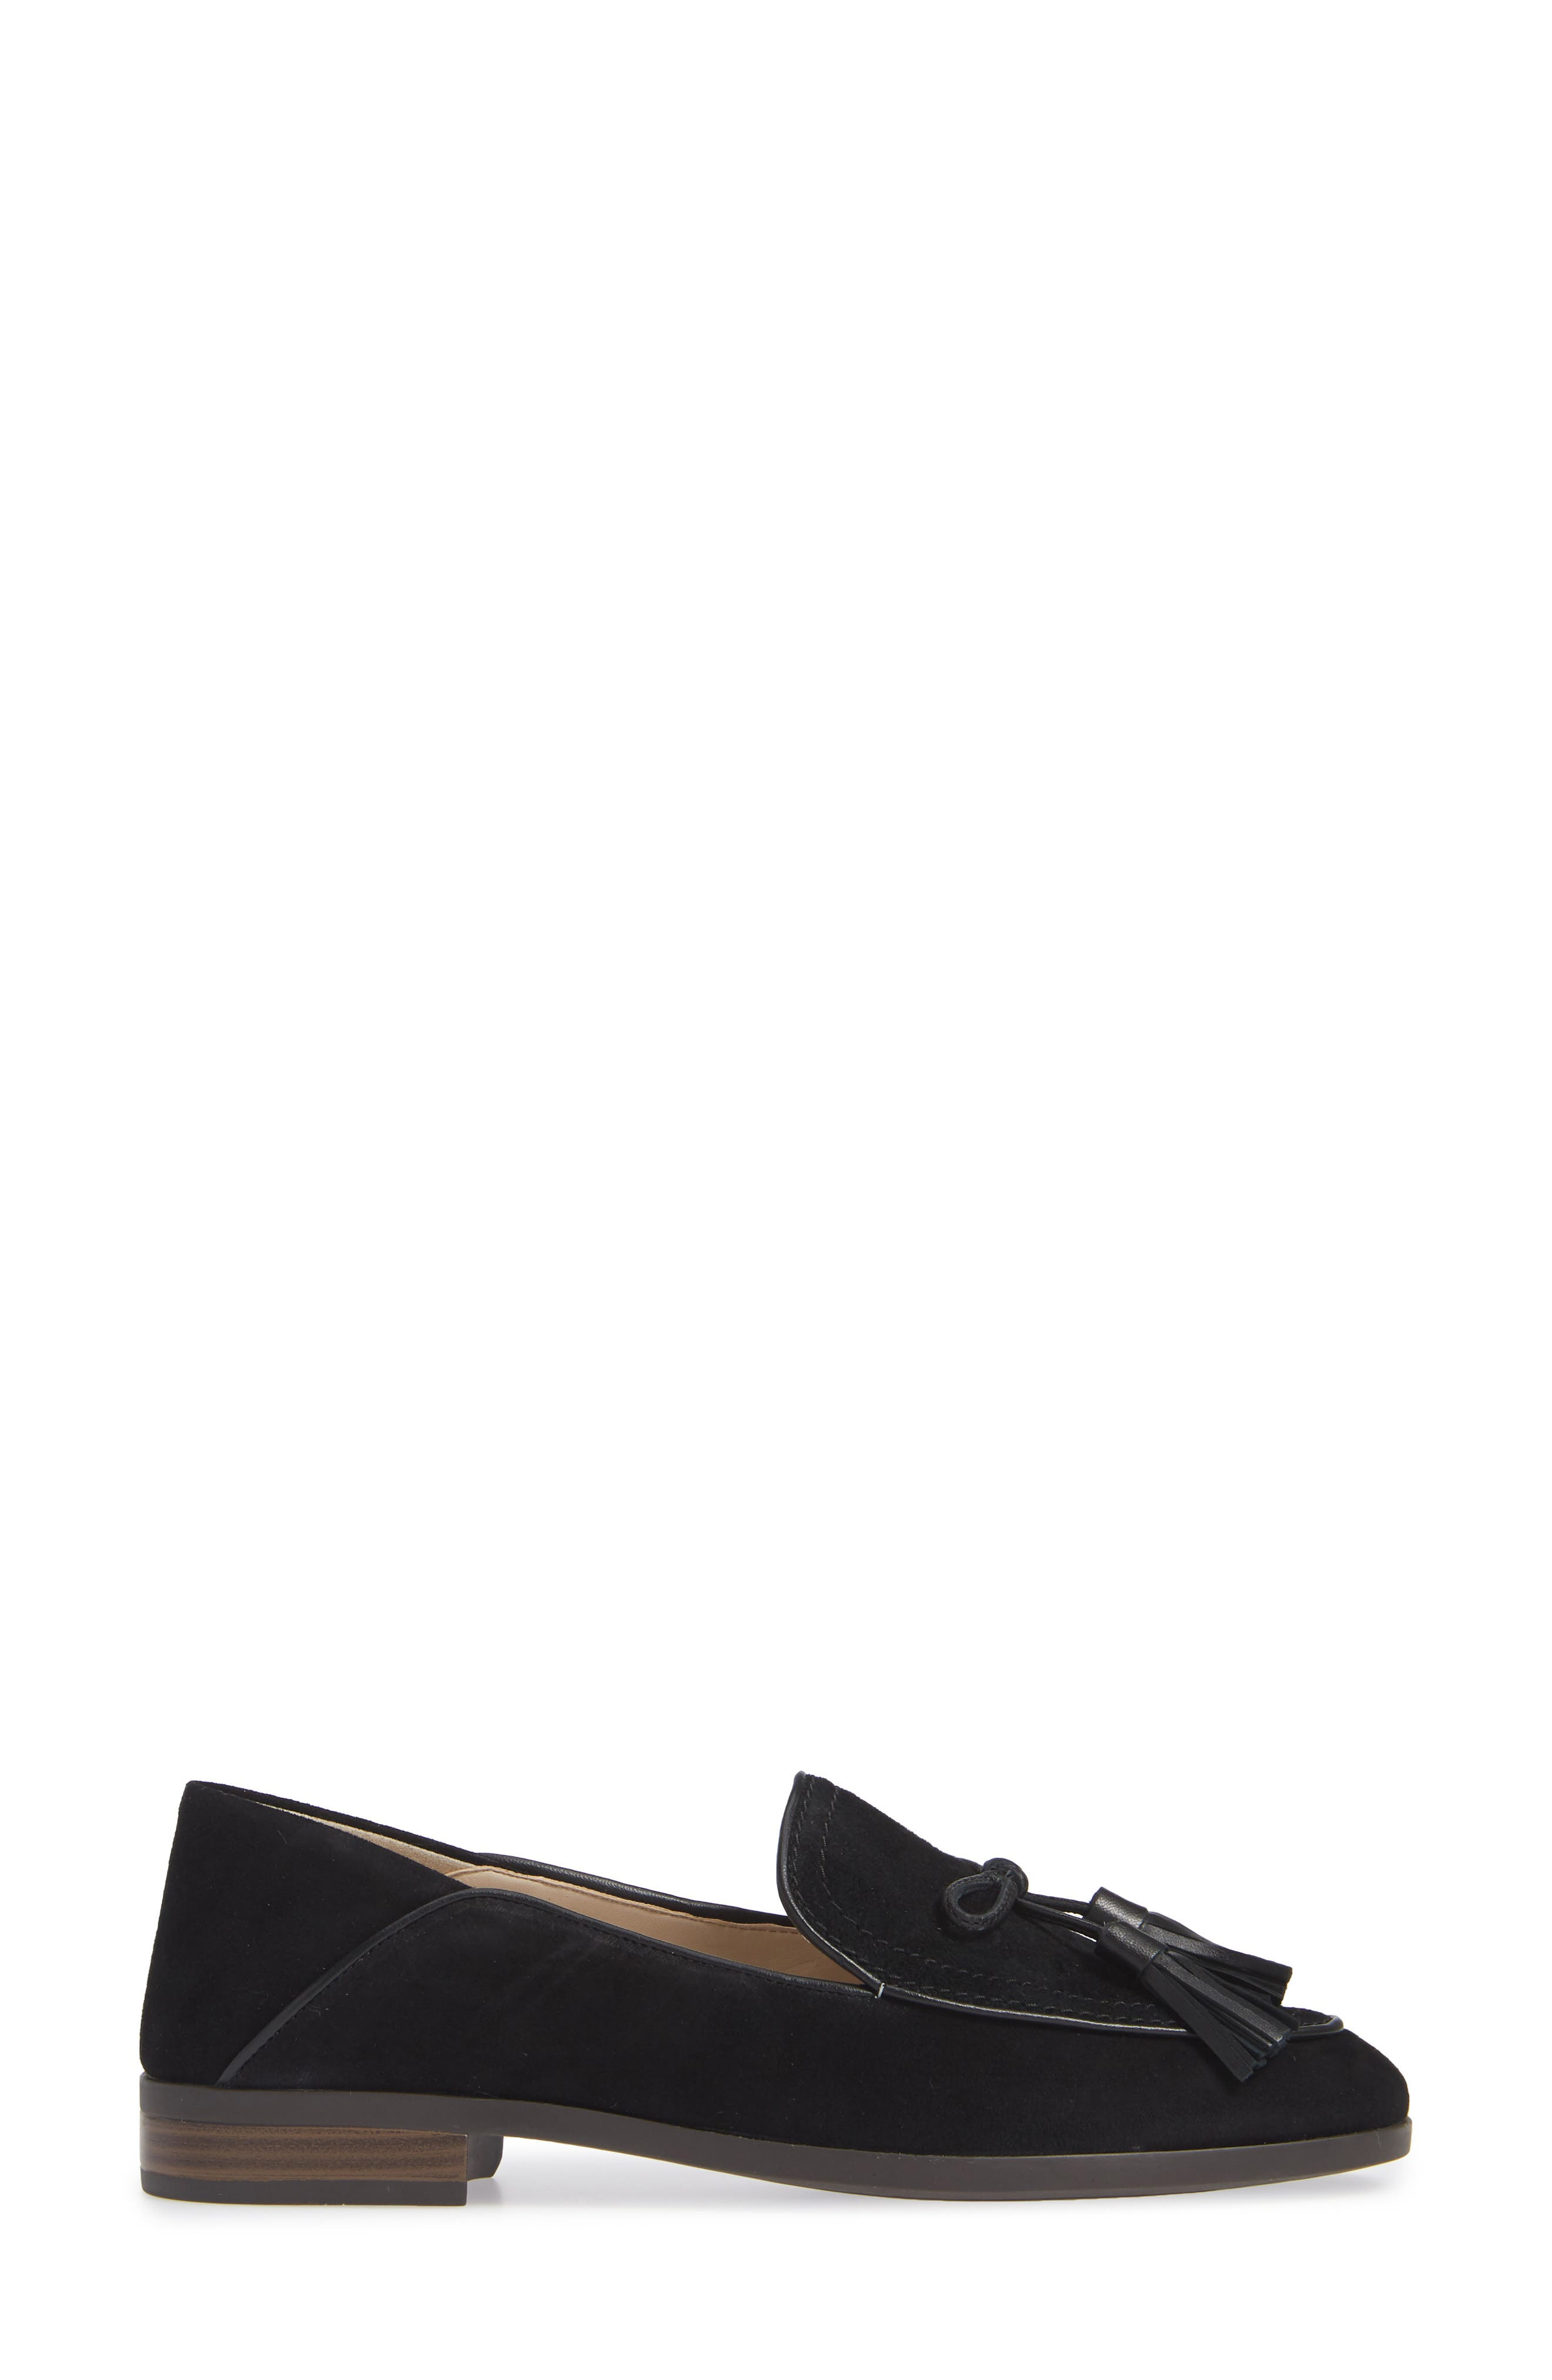 COLE HAAN, Gabrielle Loafer, Alternate thumbnail 3, color, BLACK SUEDE